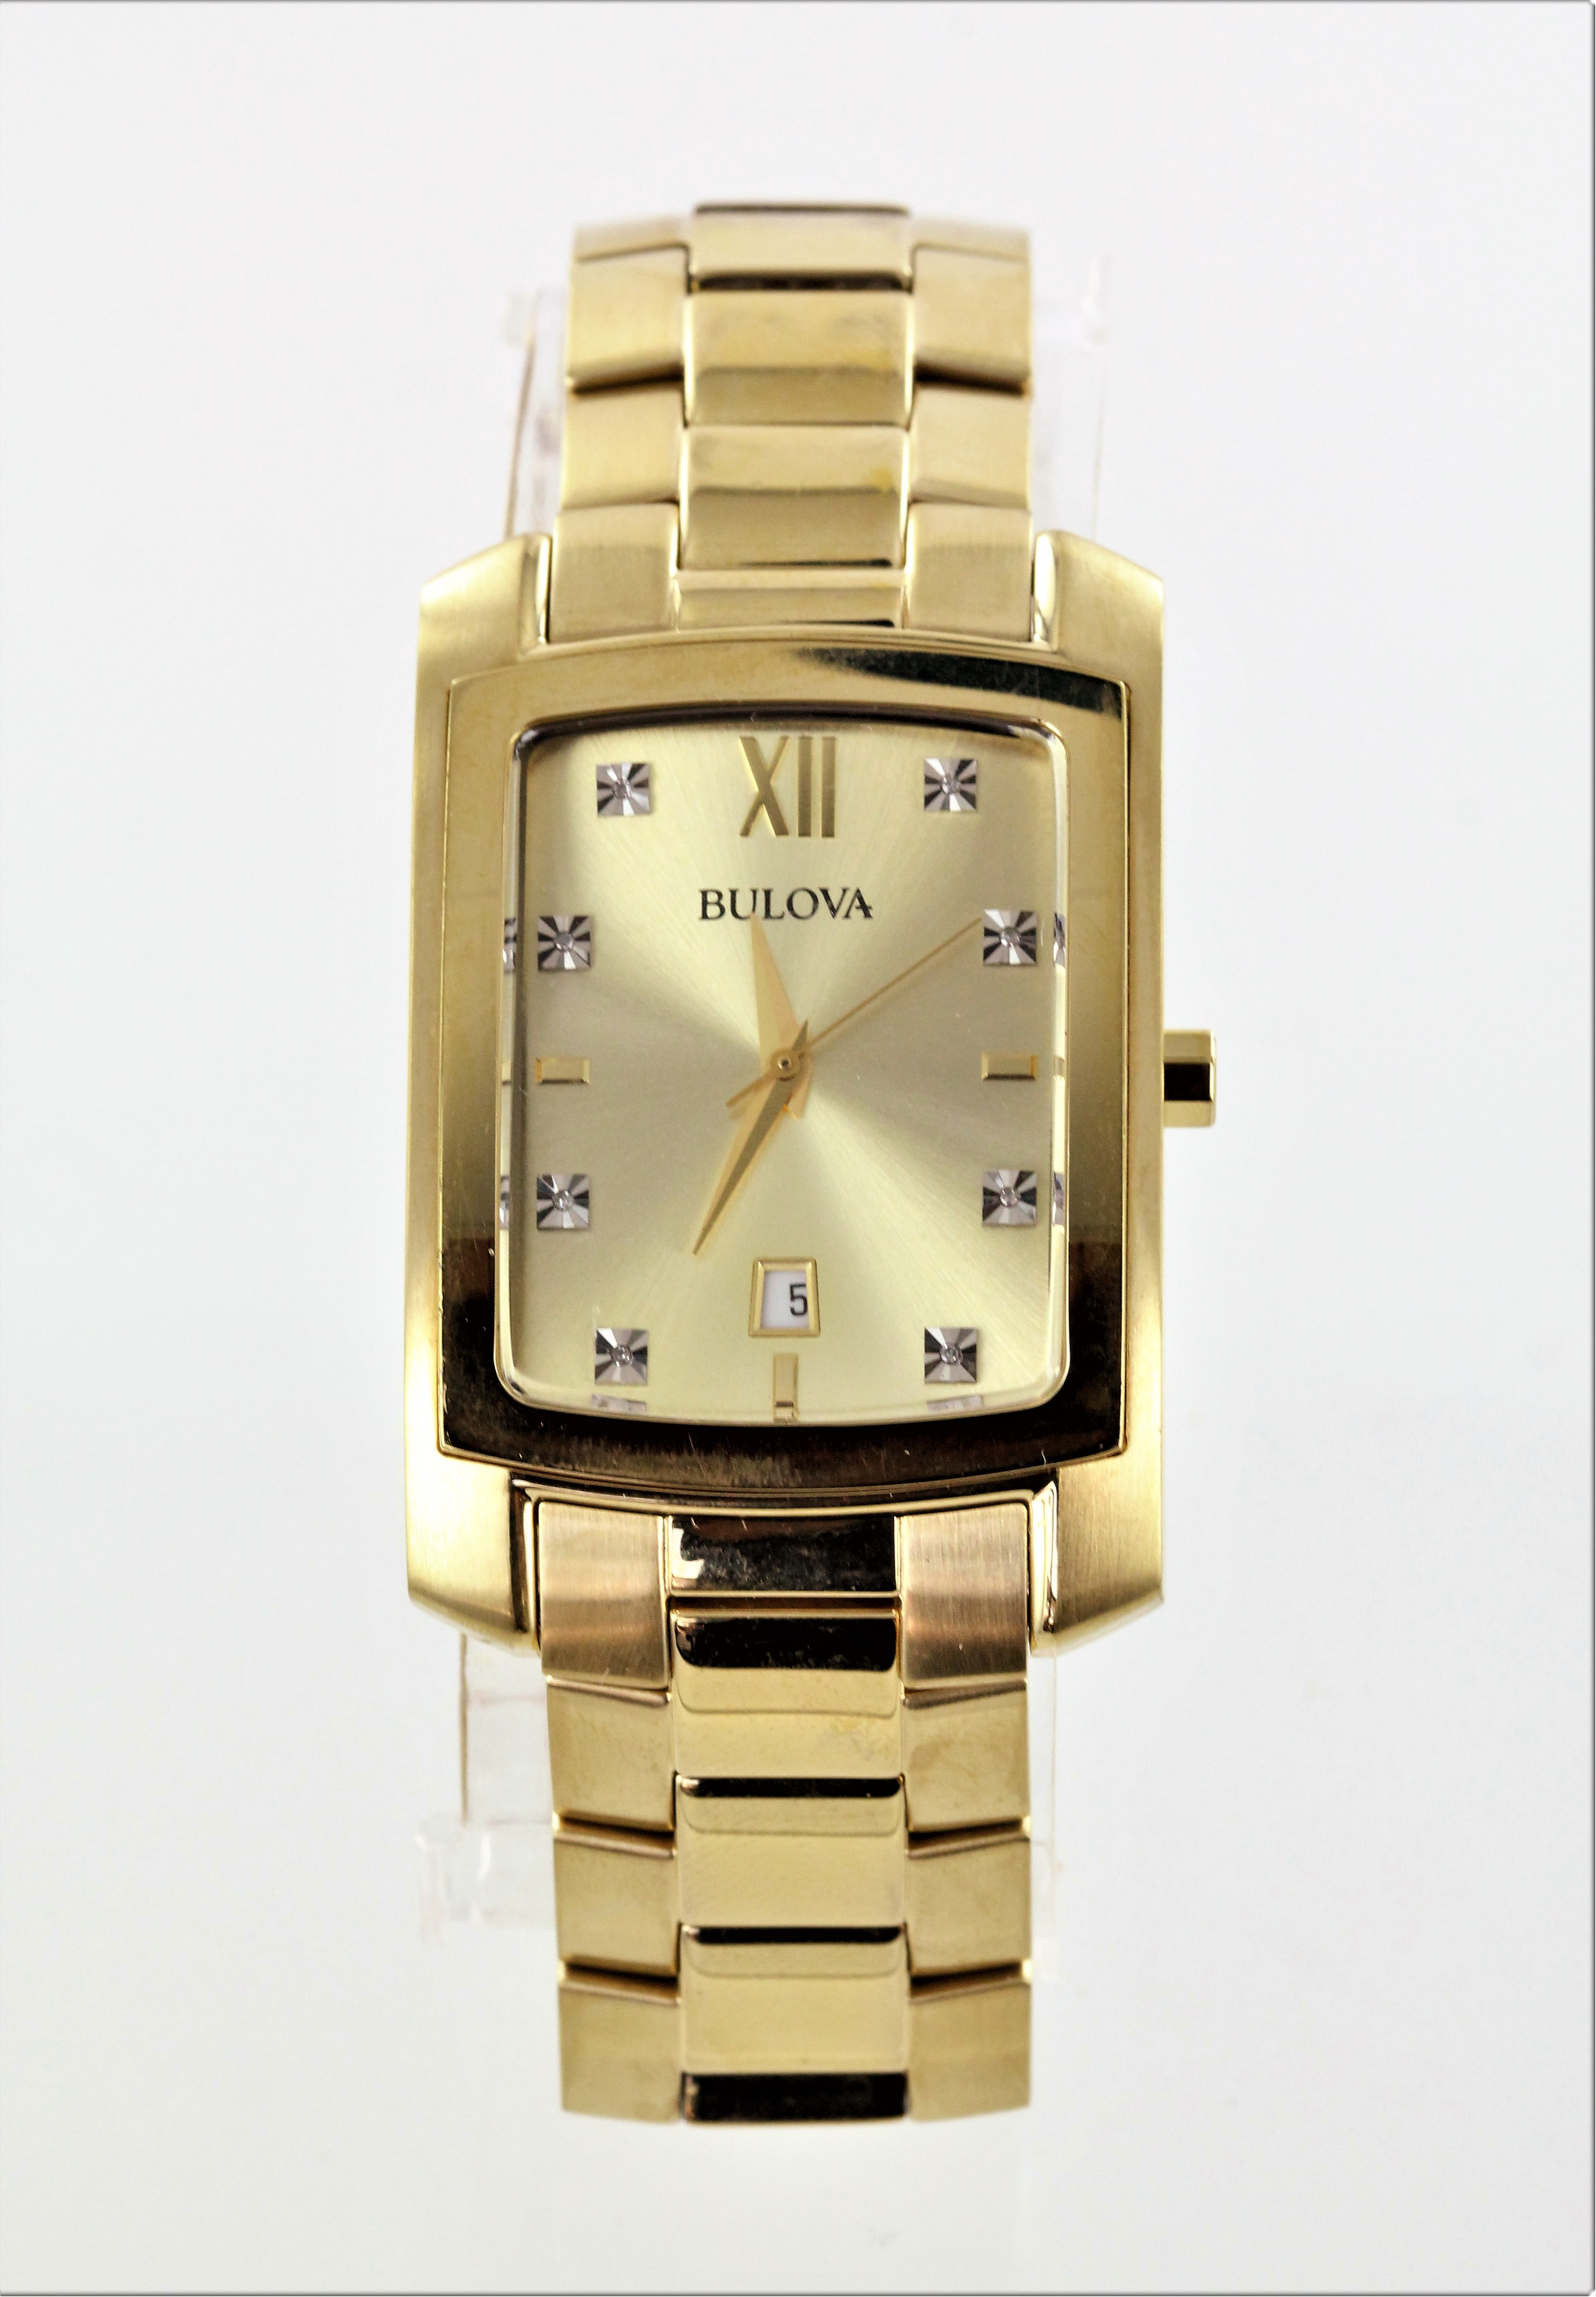 ef5b97ea67c9 Details about Pre-Owned Bulova Diamond Mens Gold Plated Stainless Steel  Quartz Watch 97D107